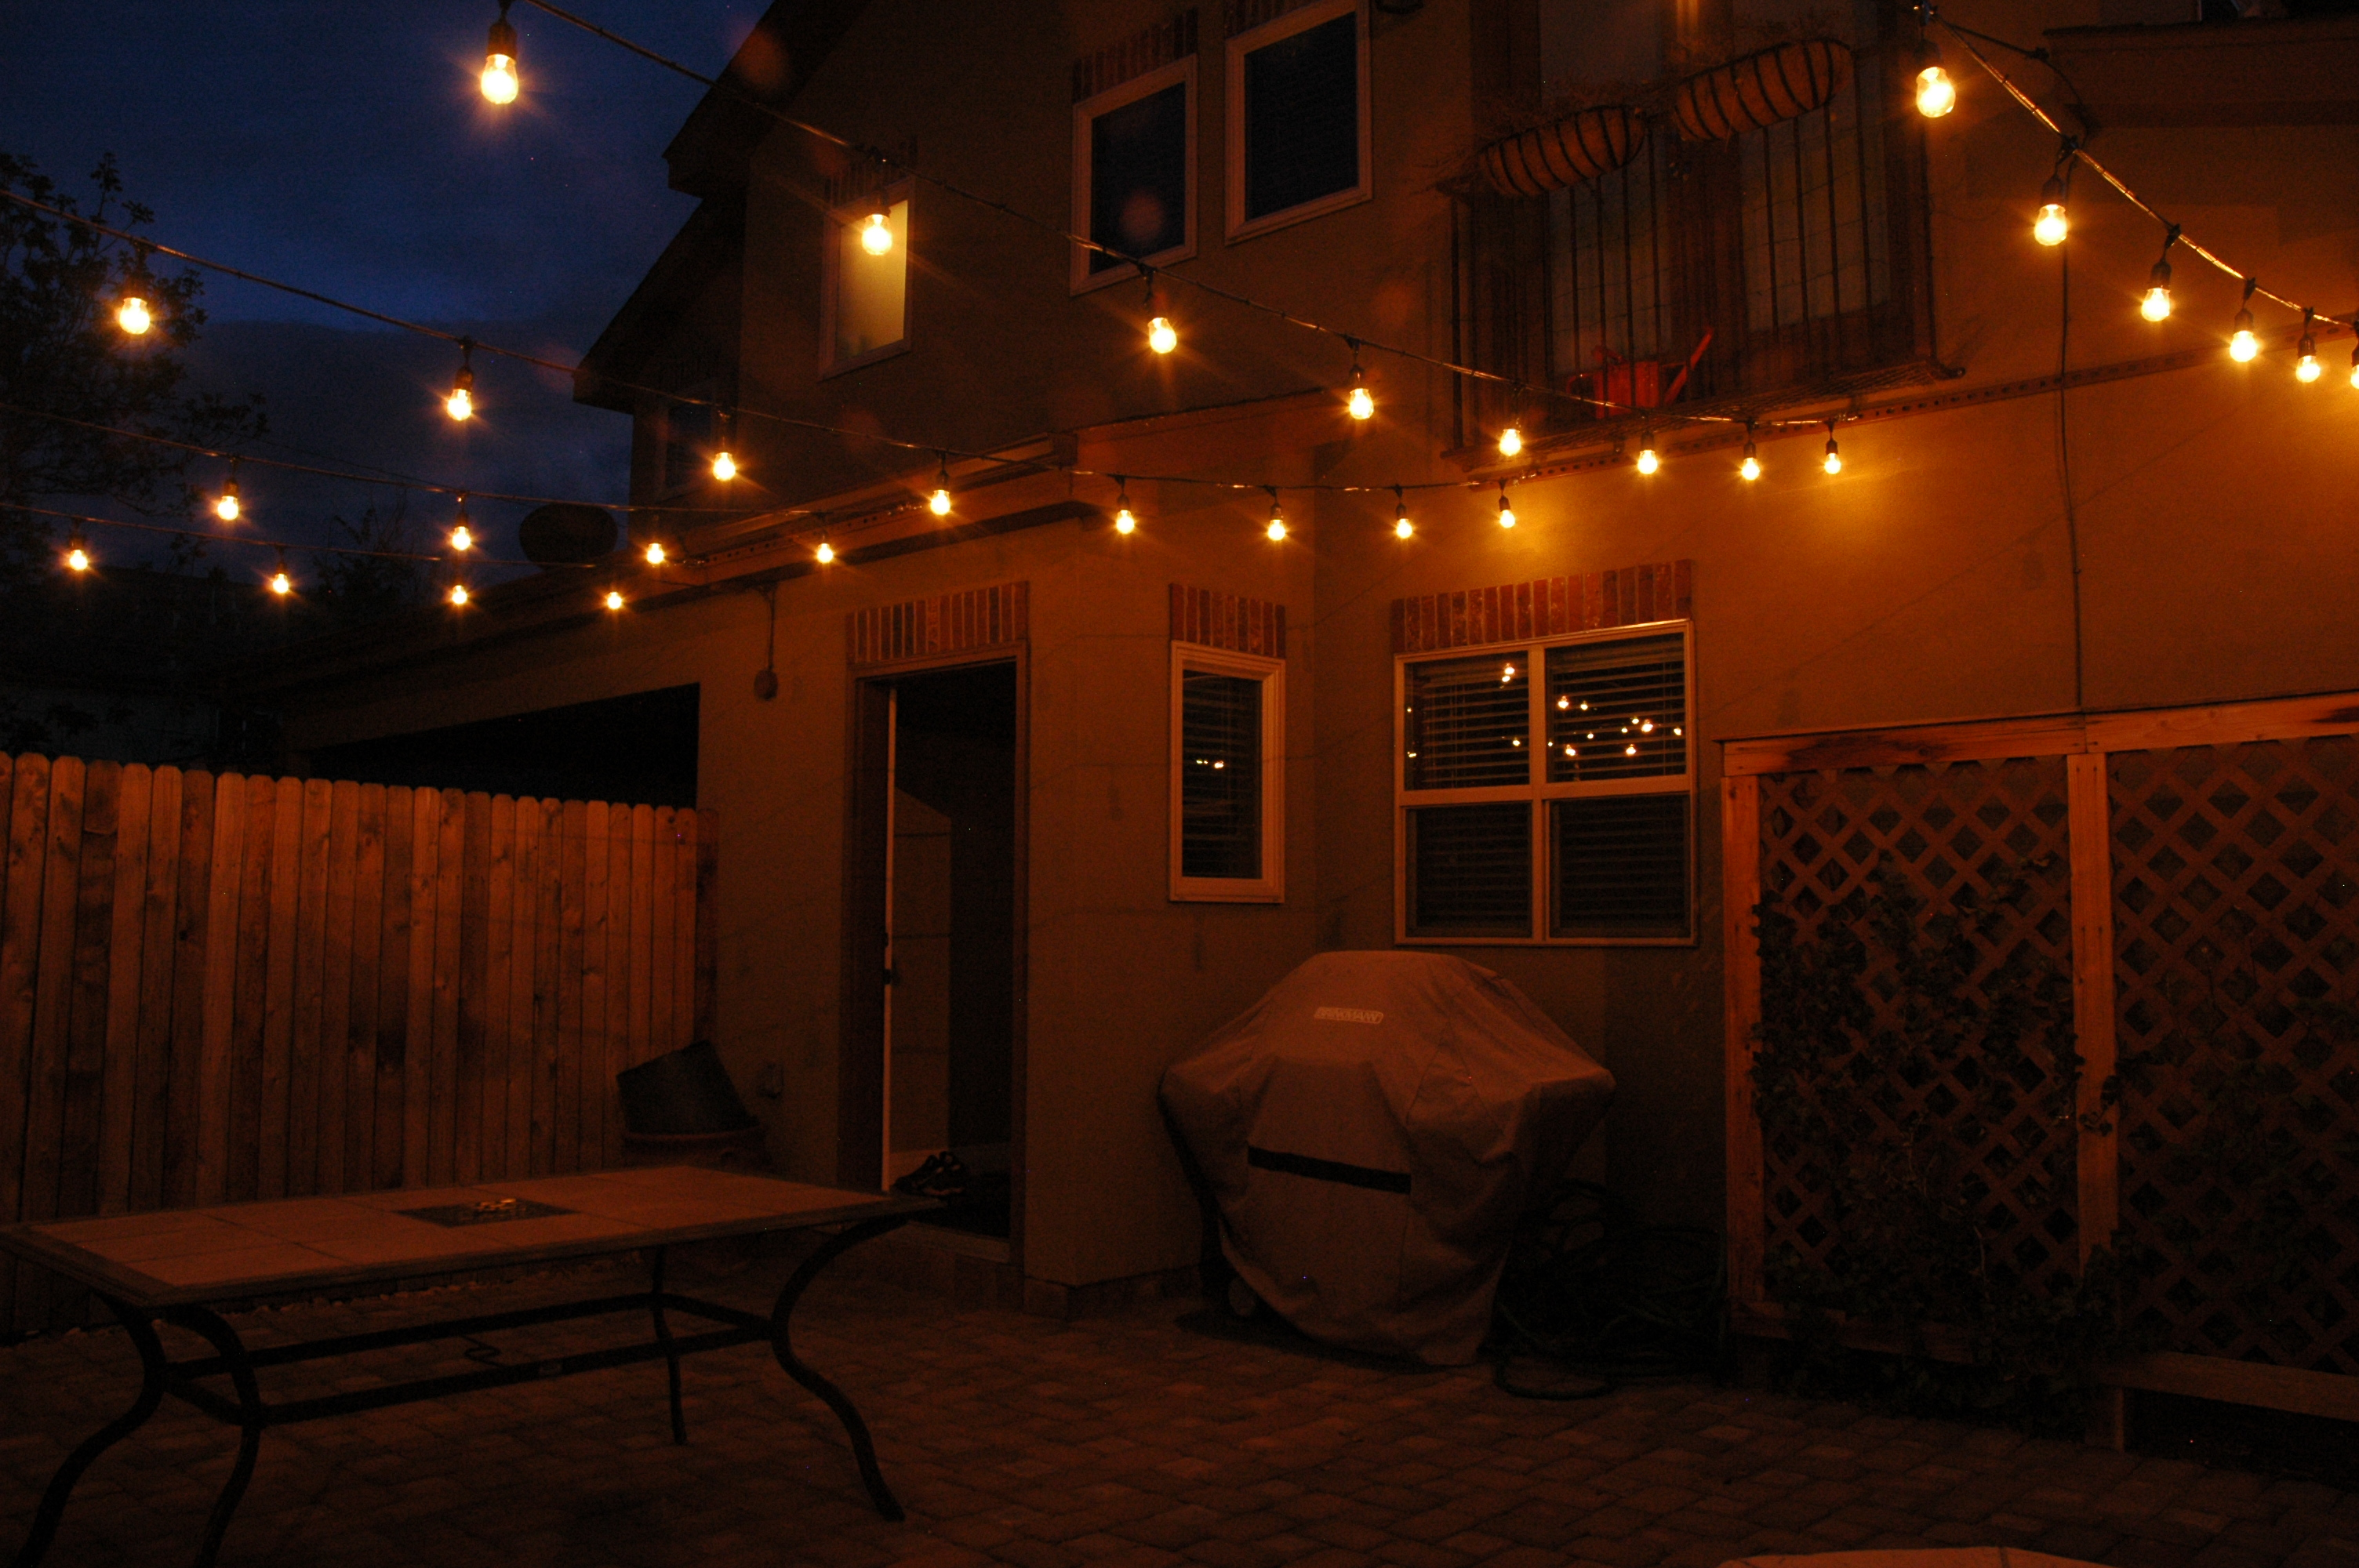 Exterior courtyard with string lighting